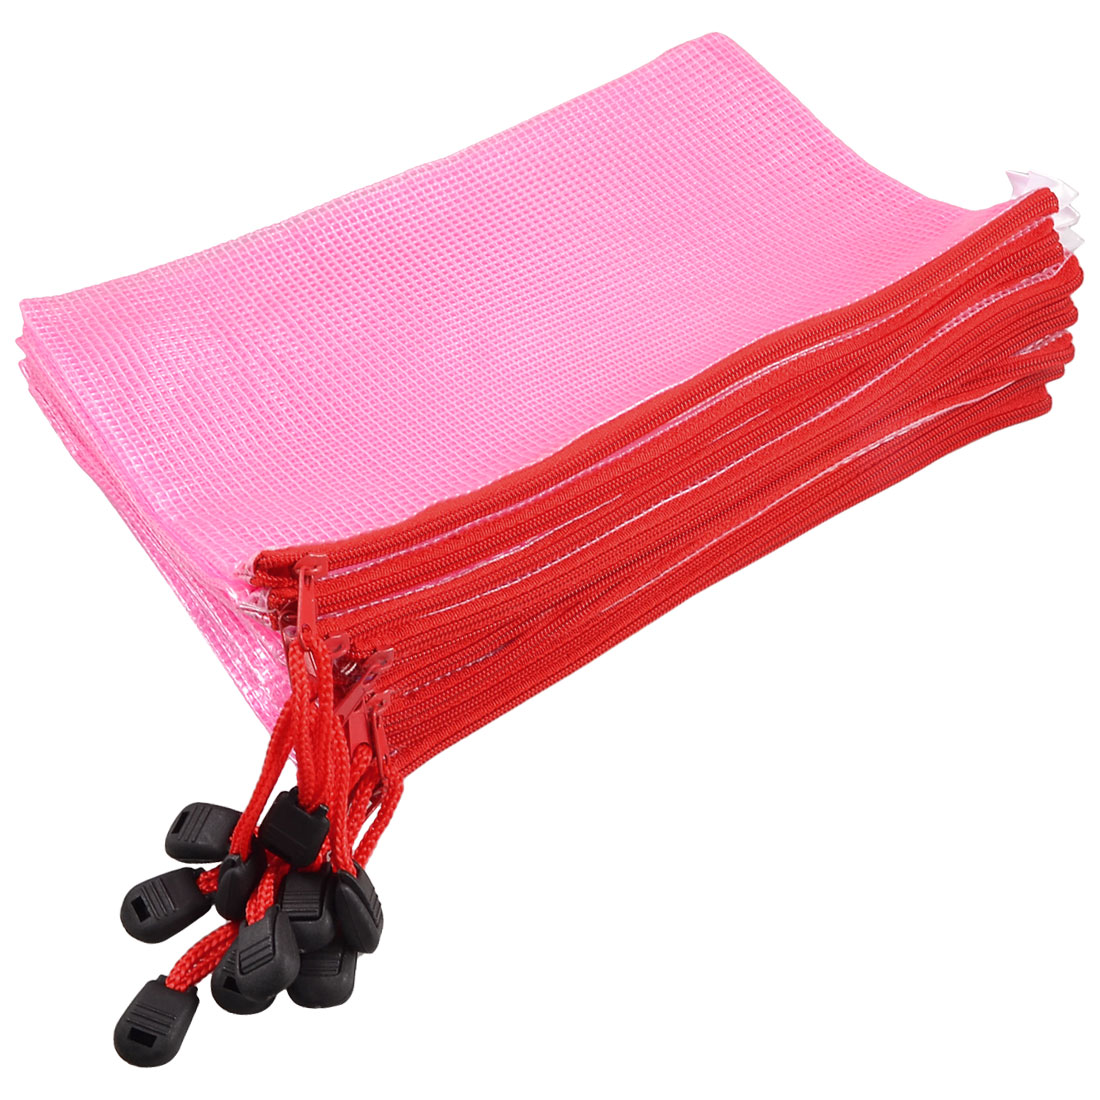 Unique Bargains Unique Bargains Home Office Water Resistant Pink A5 File Paper Document Holder Bag 10 Pcs